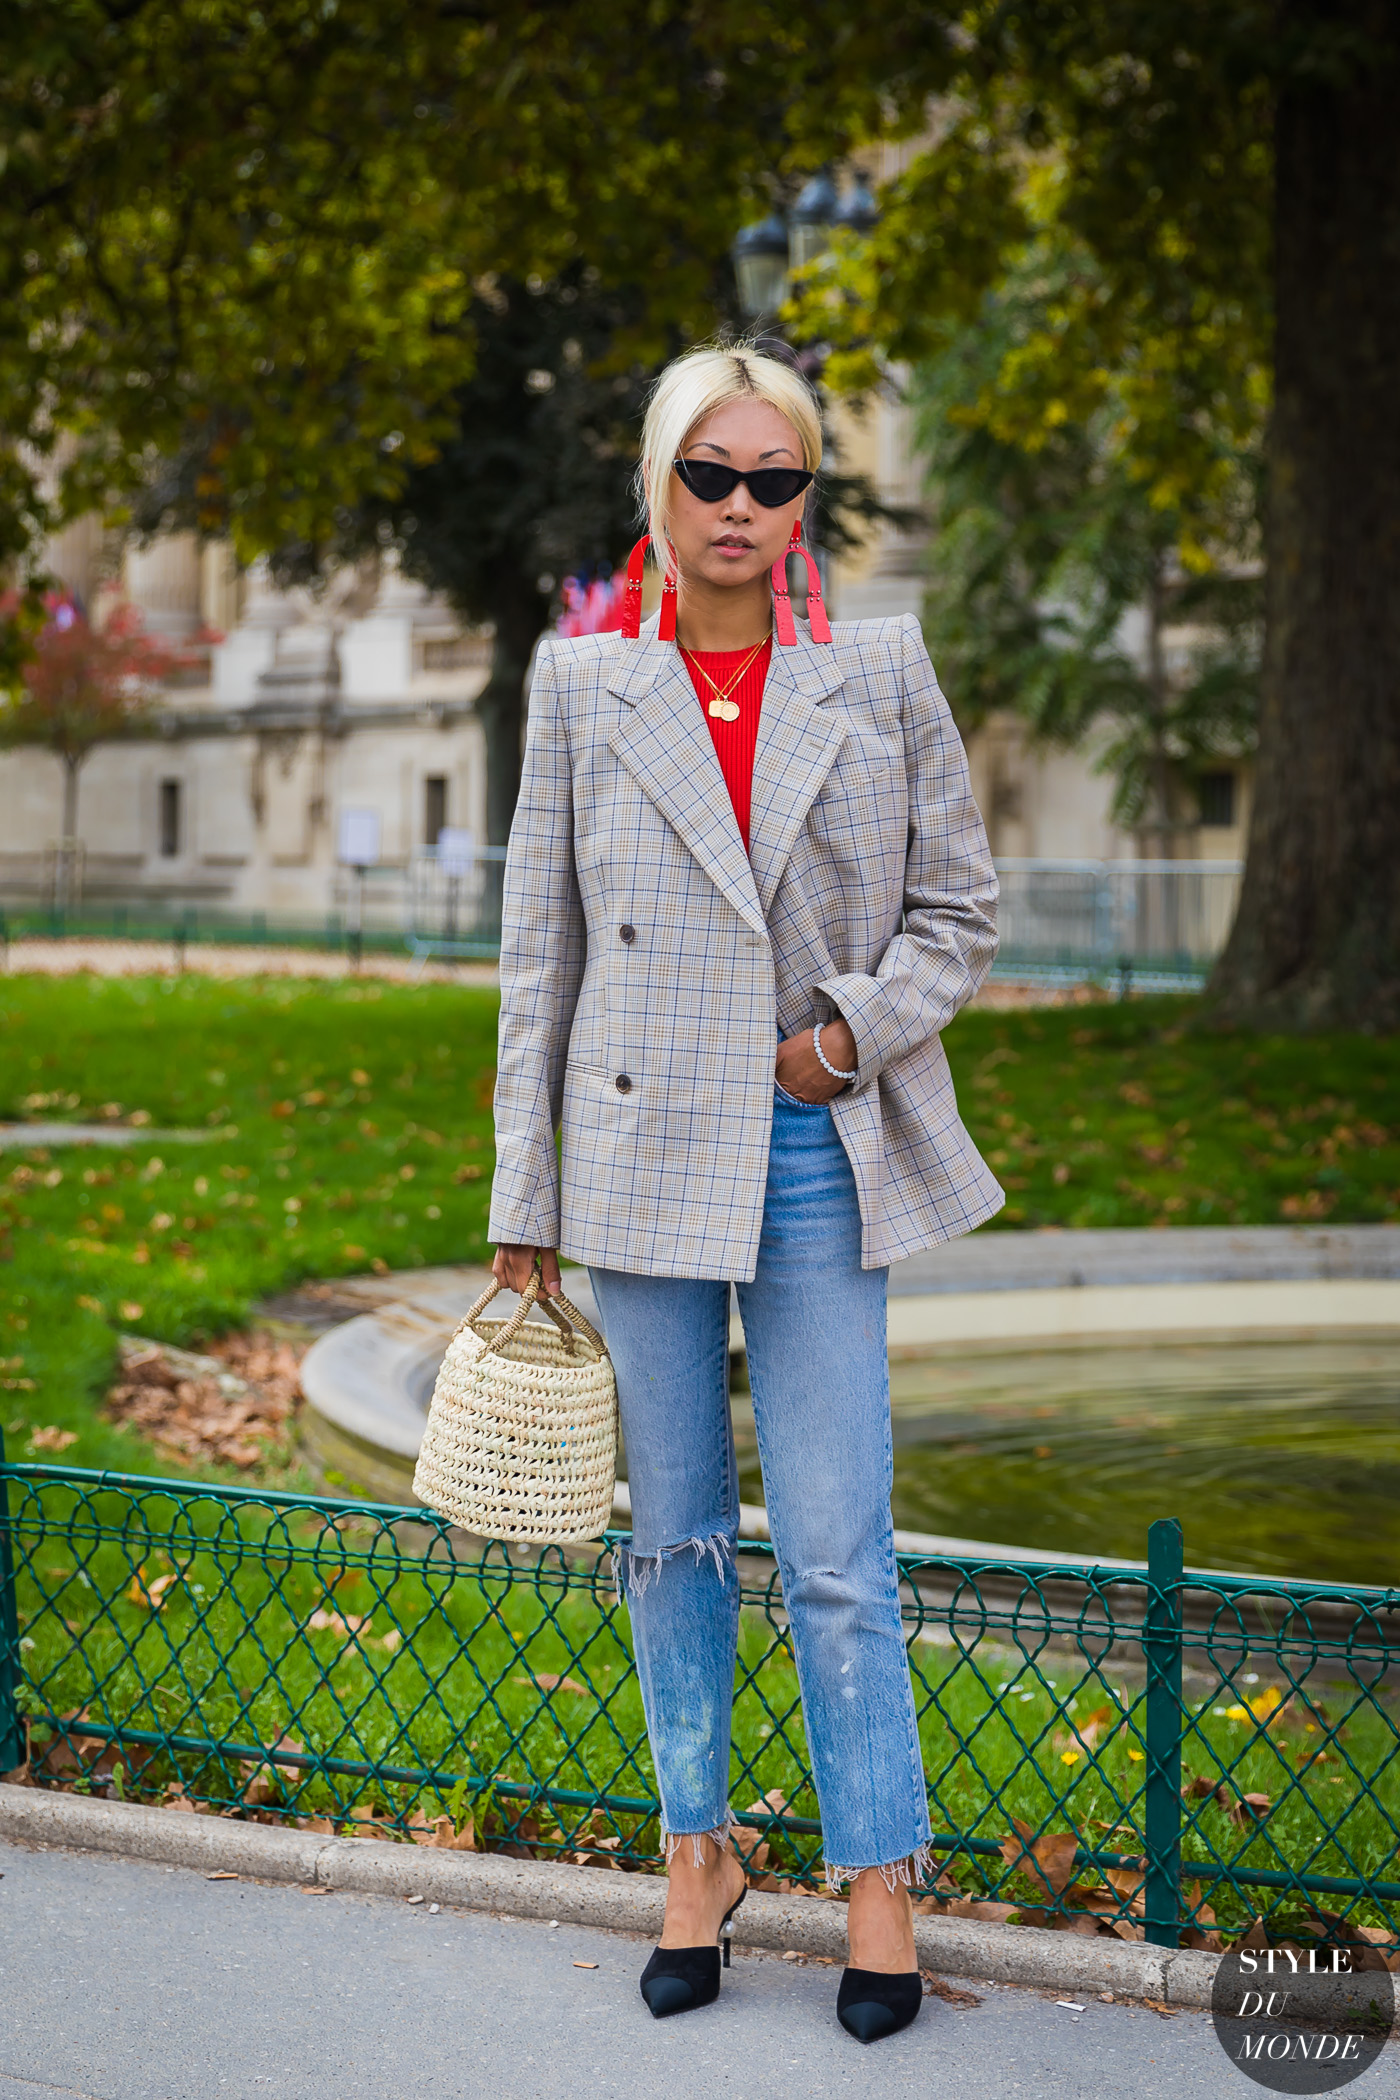 Vanessa Hong by STYLEDUMONDE Street Style Fashion Photography_48A5975